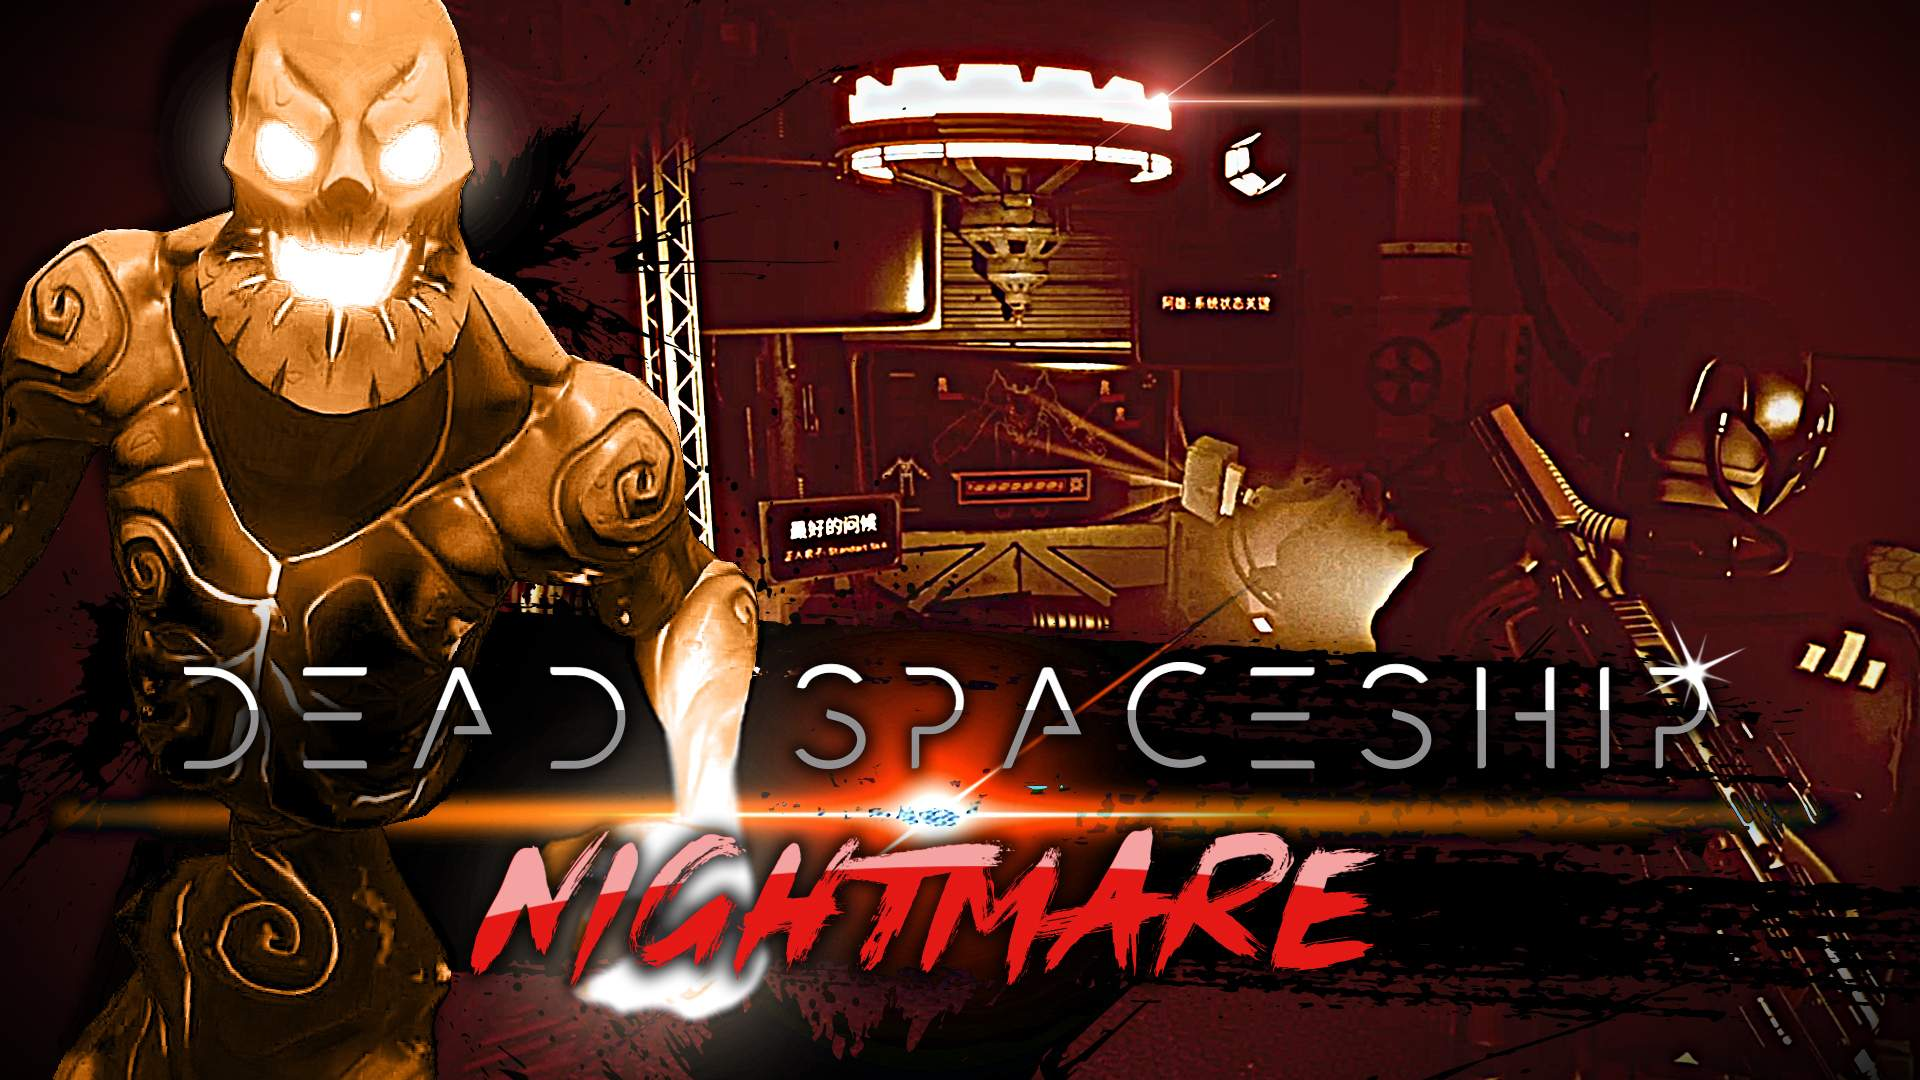 DEAD SPACESHIP NIGHTMARE (SEPIA EDITION)